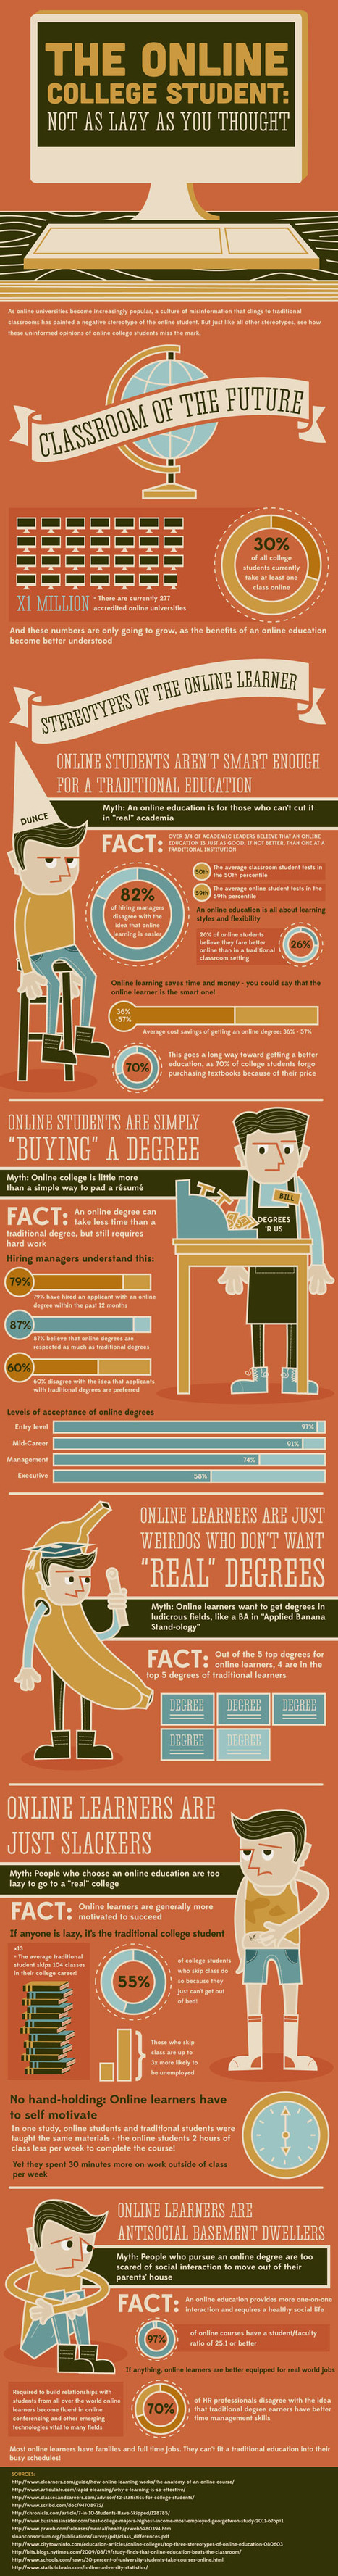 Do you have the wrong impression about online learning? [Infographic] | iEduc | Scoop.it